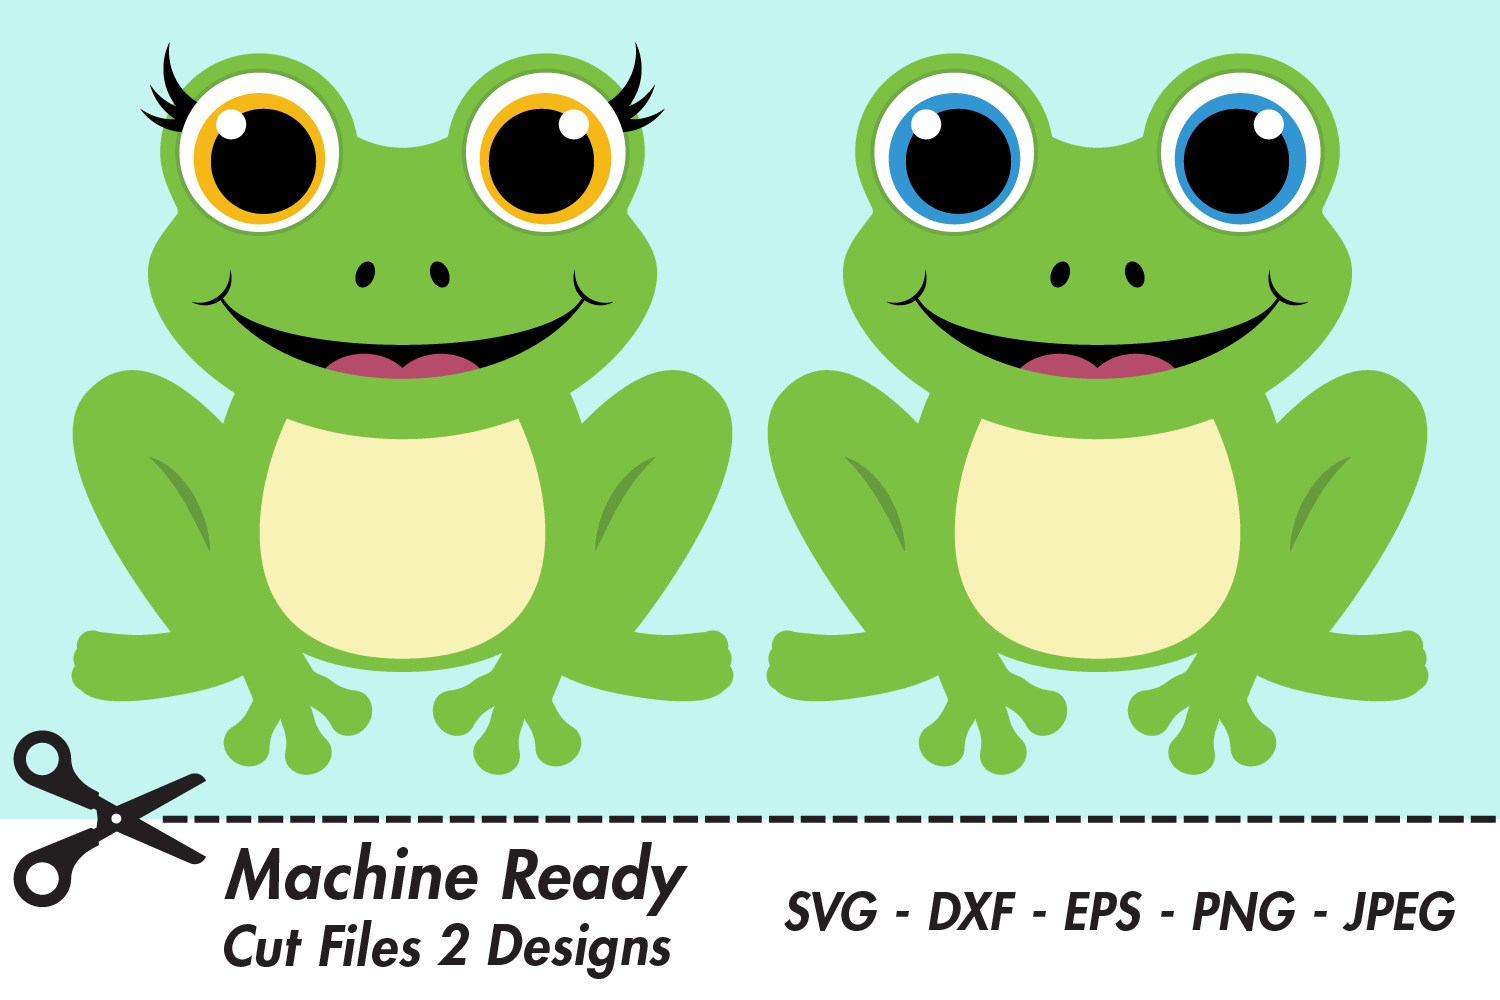 Download Free Cute Frogs Graphic By Captaincreative Creative Fabrica for Cricut Explore, Silhouette and other cutting machines.